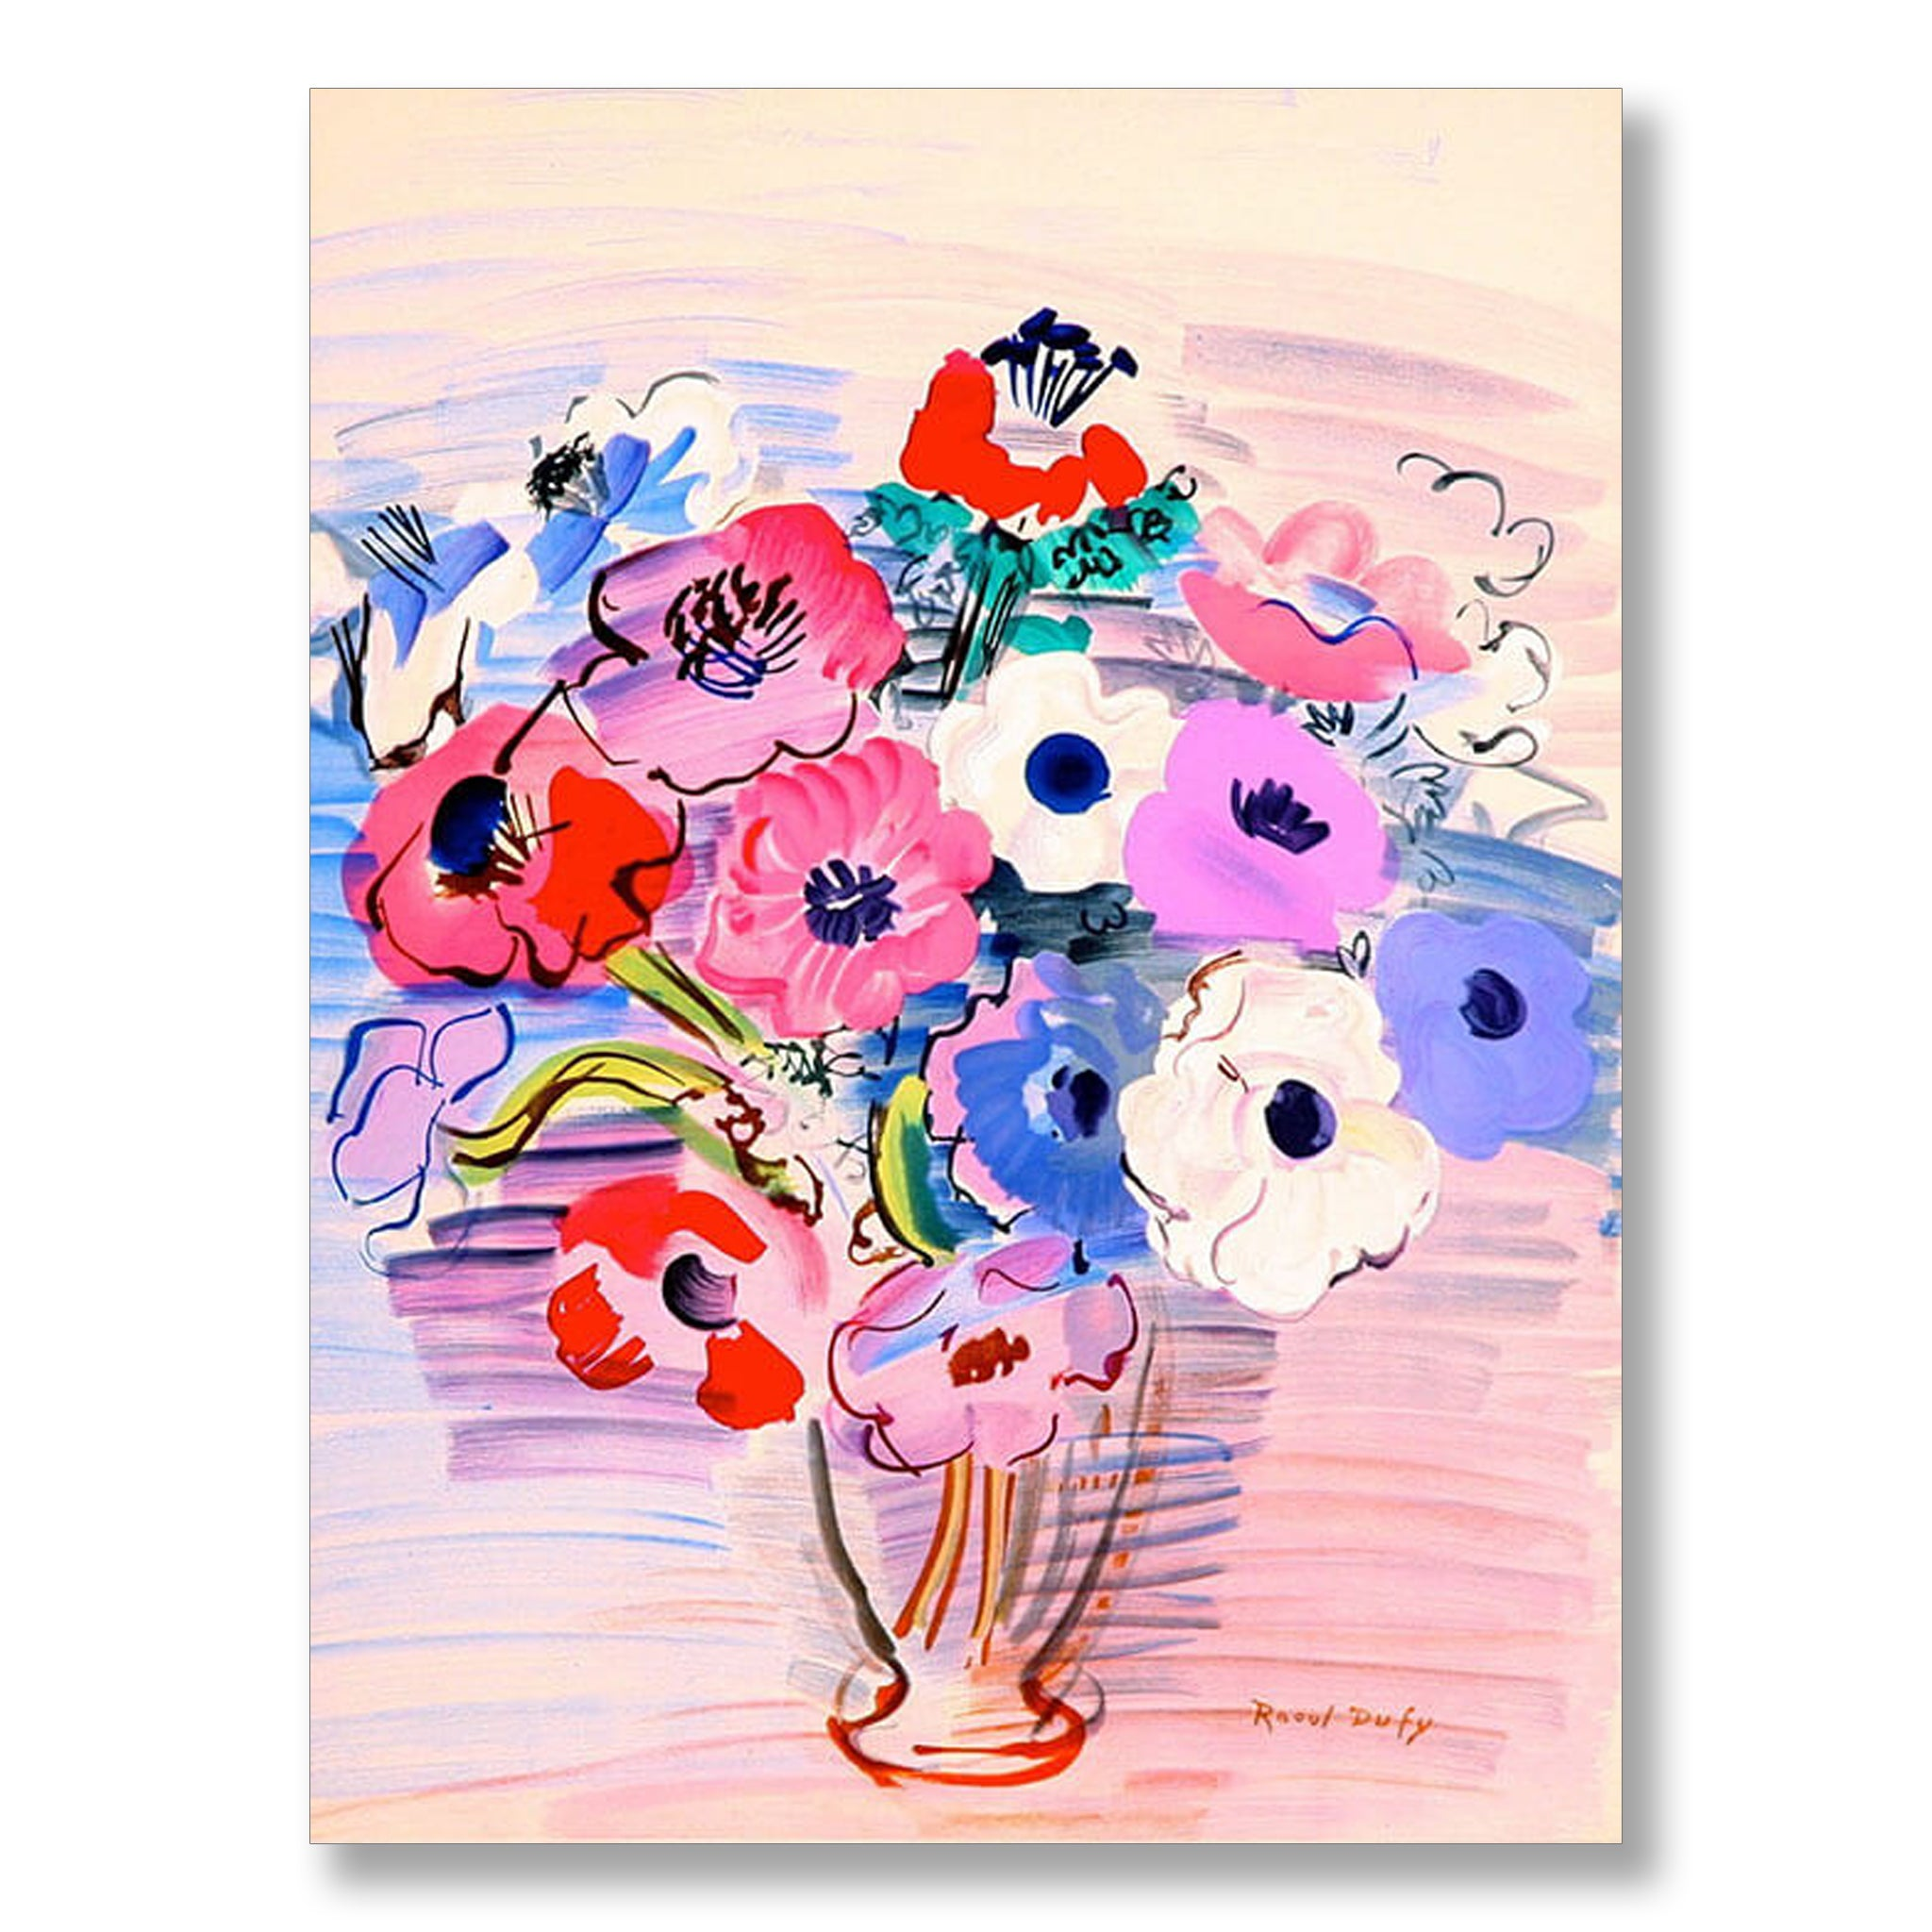 Bouquet of Anemones 1948 by Raoul Dufy